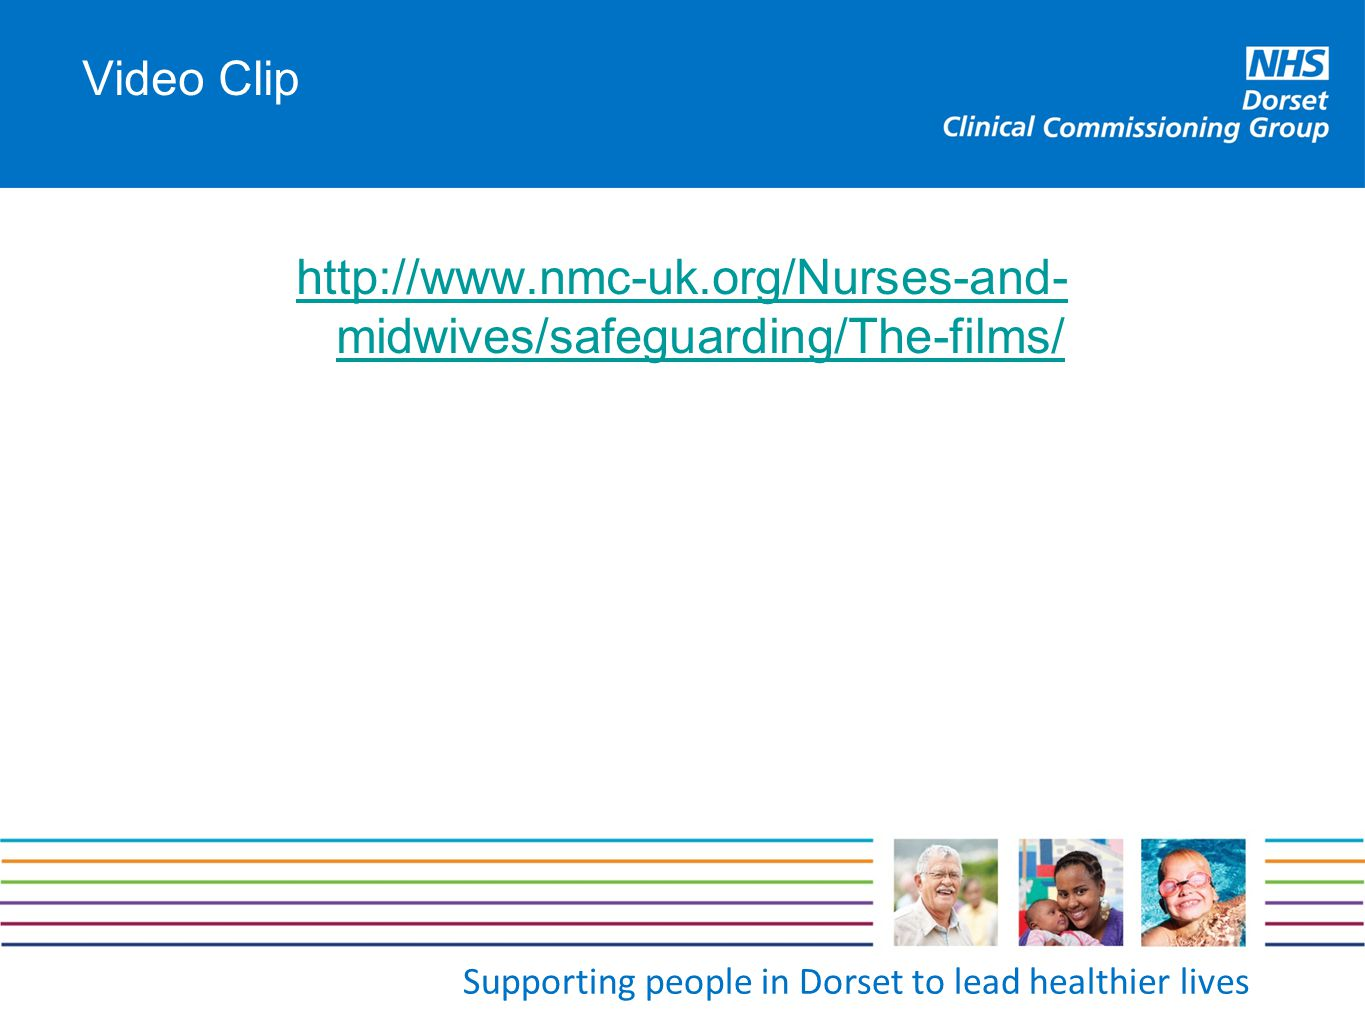 Video Clip http://www.nmc-uk.org/Nurses-and-midwives/safeguarding/The-films/